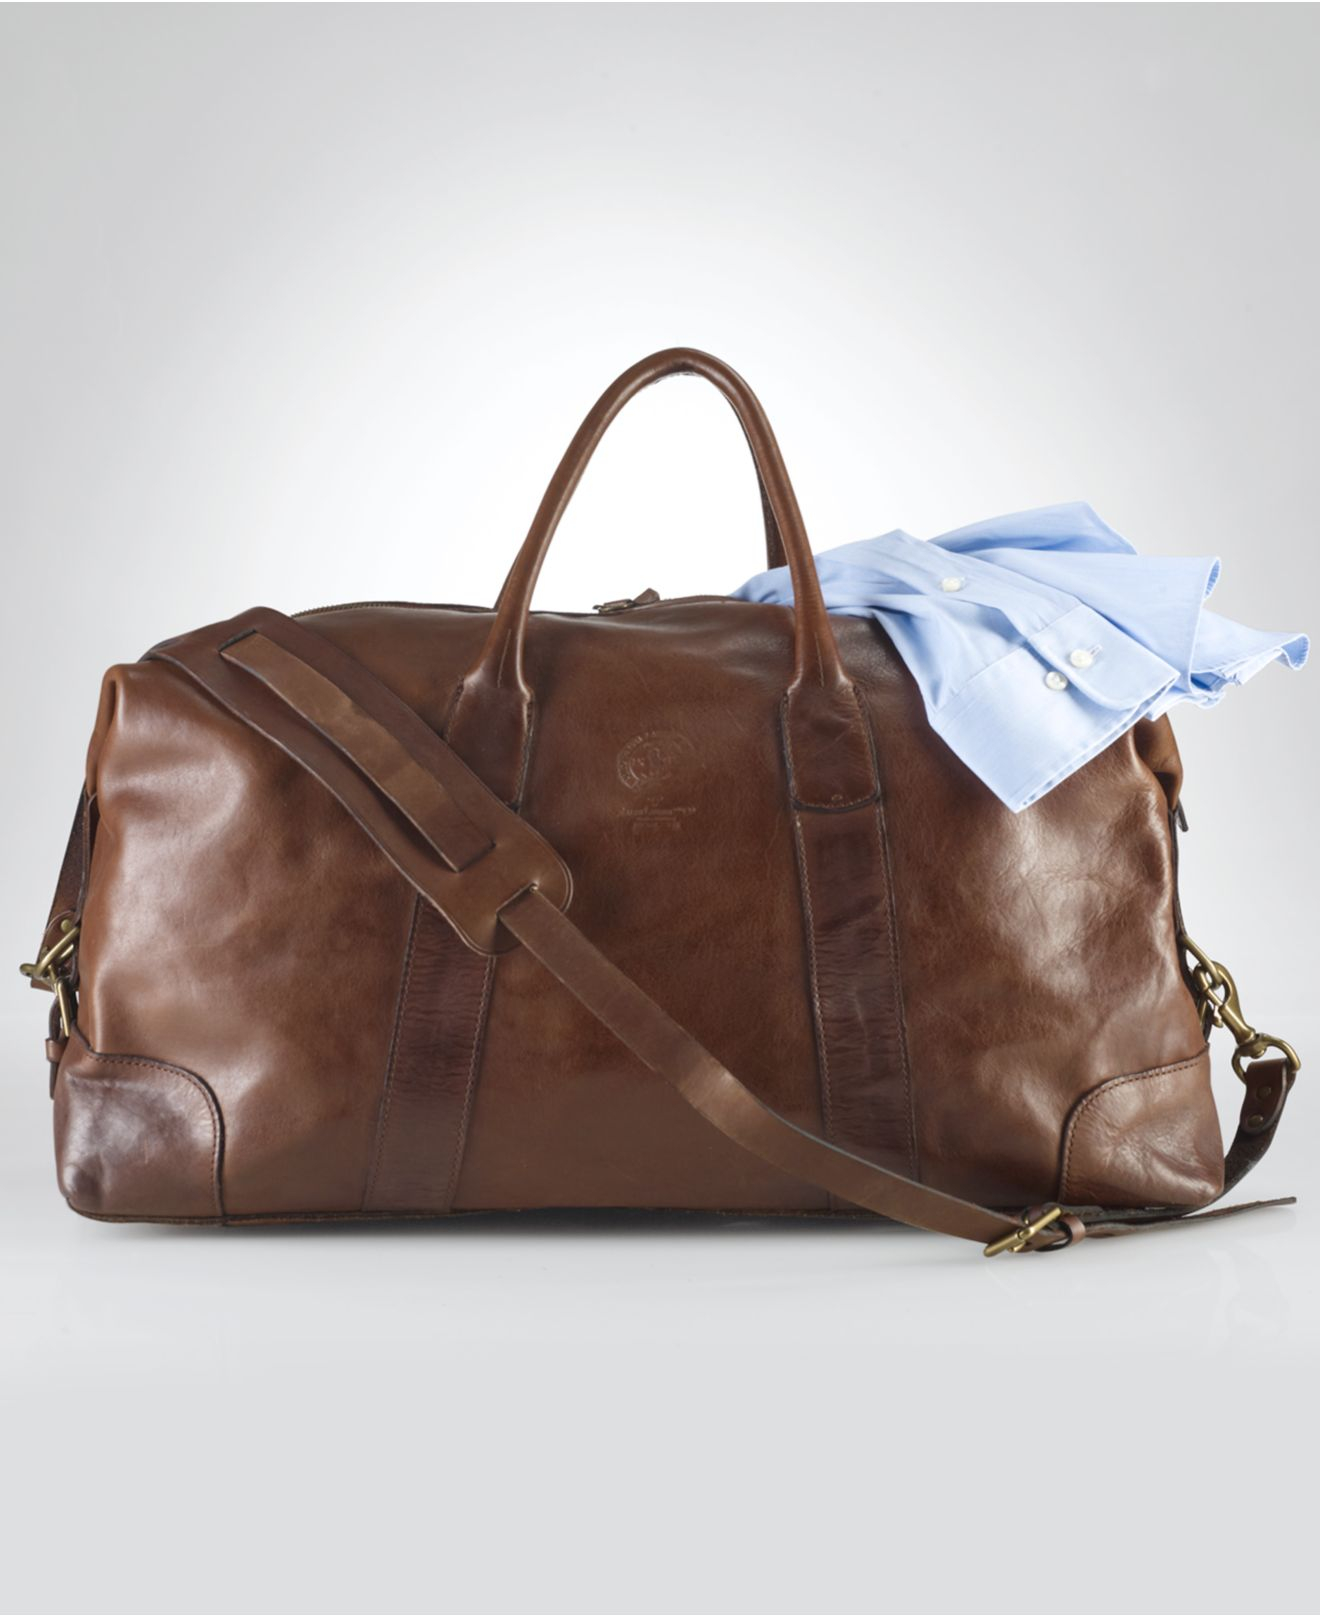 9d5356b474e0 Lyst - Polo Ralph Lauren Core Leather Duffle Bag in Brown for Men